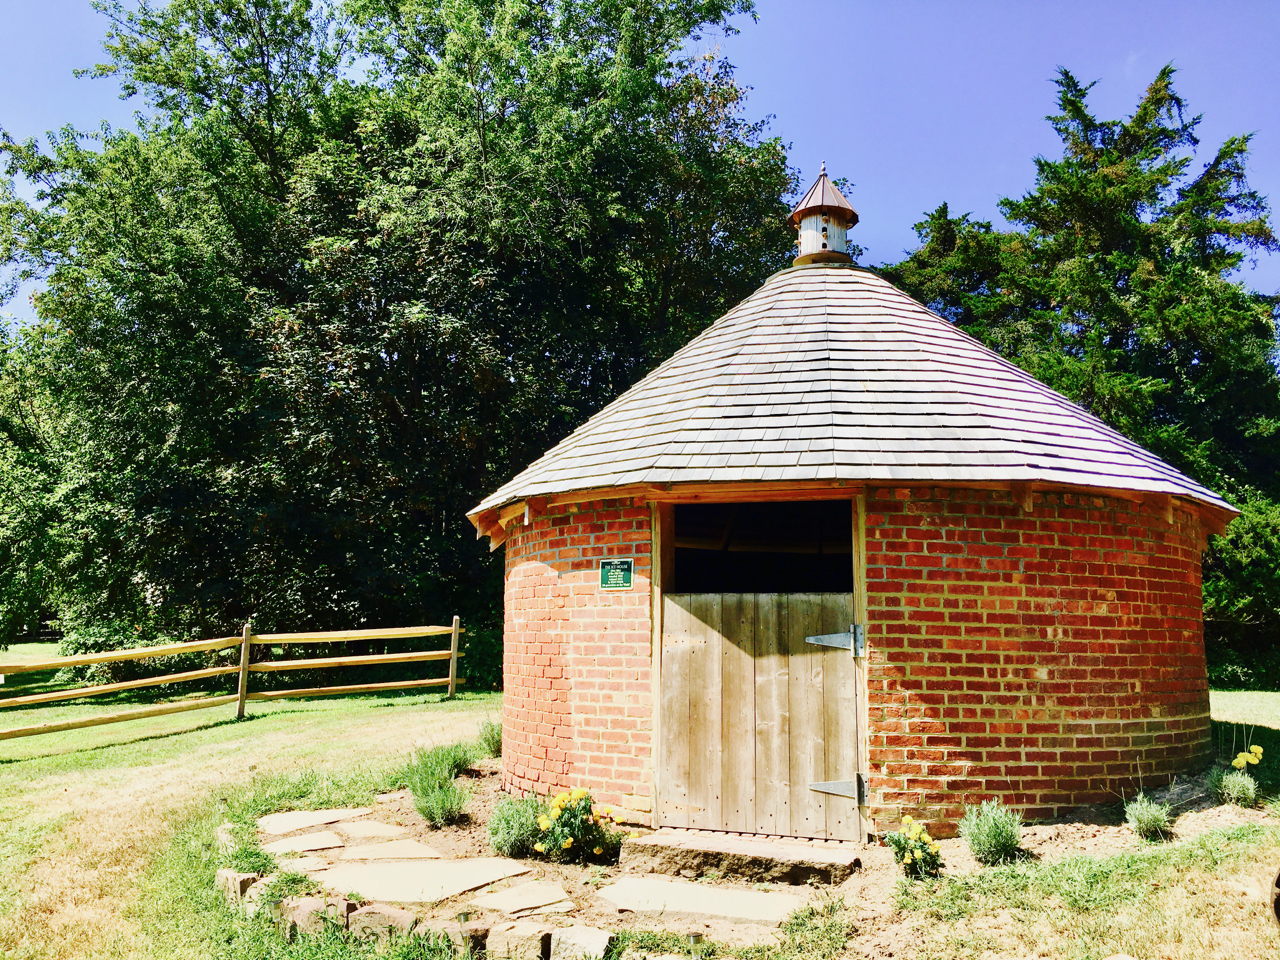 Our historical Ice House building